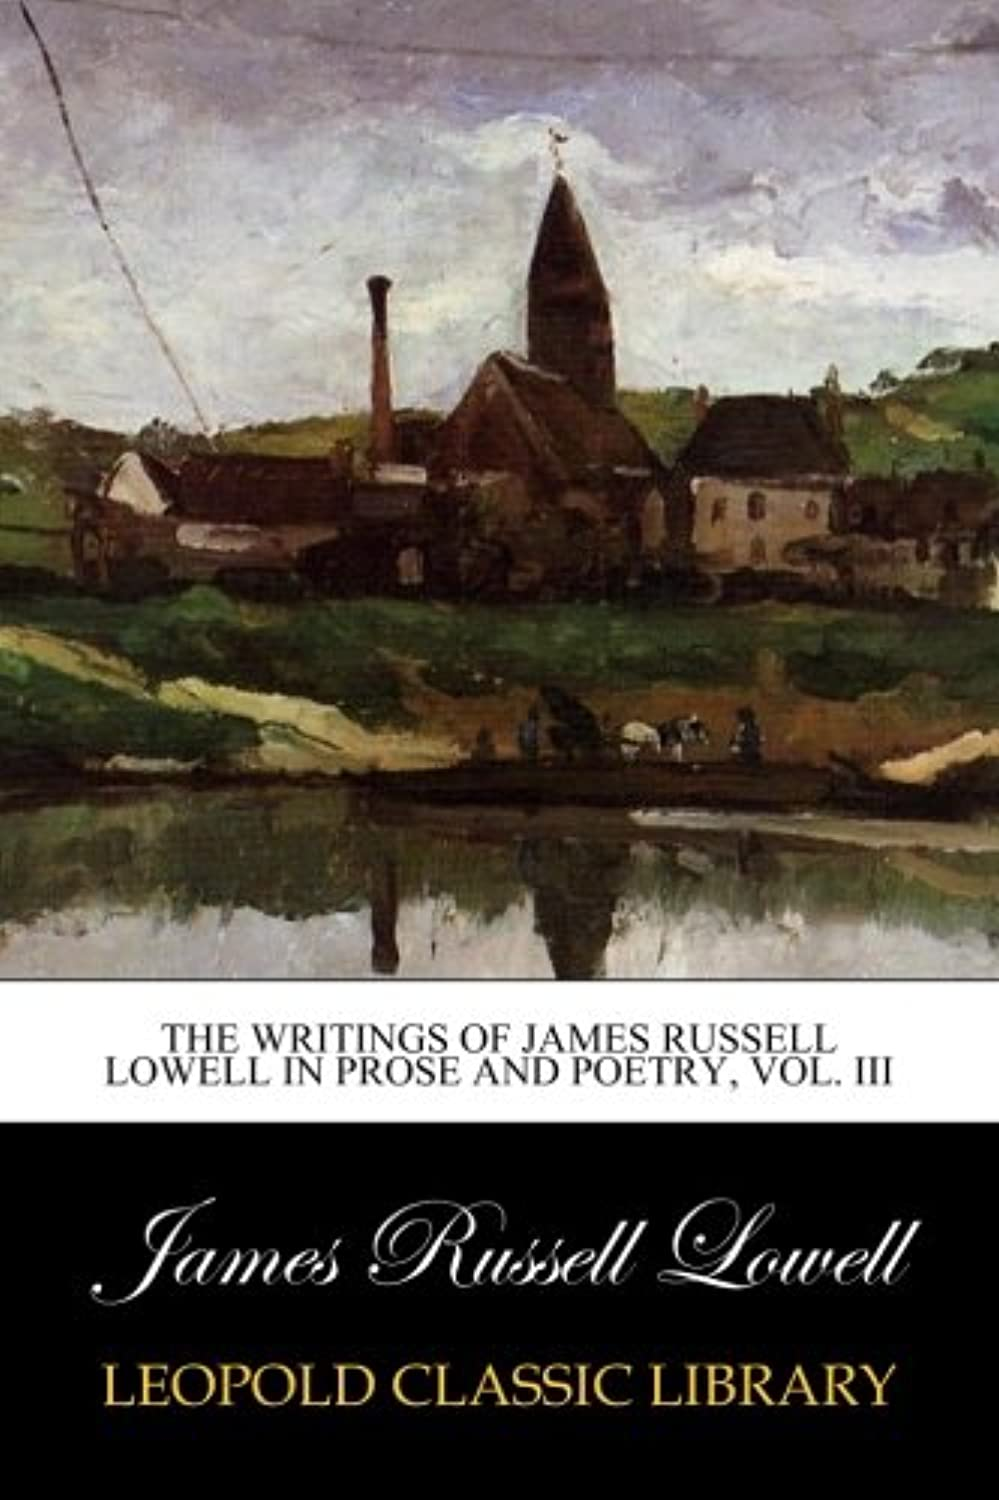 The writings of James Russell Lowell in prose and poetry, Vol. III